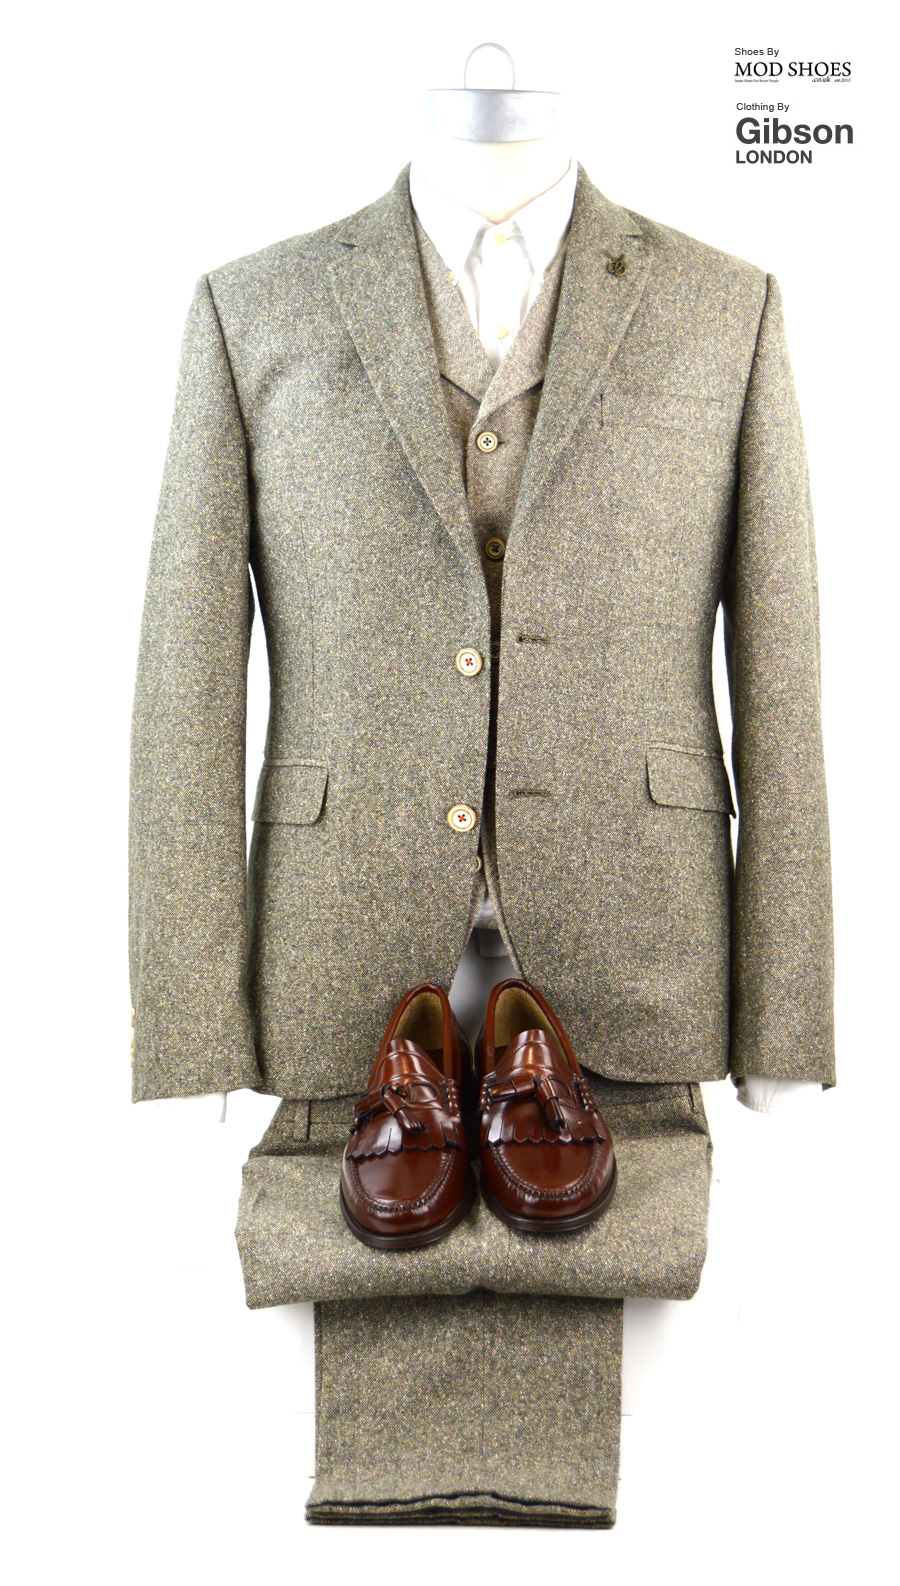 modshoes-dukes-tassel-loafers-with-gibson-suit